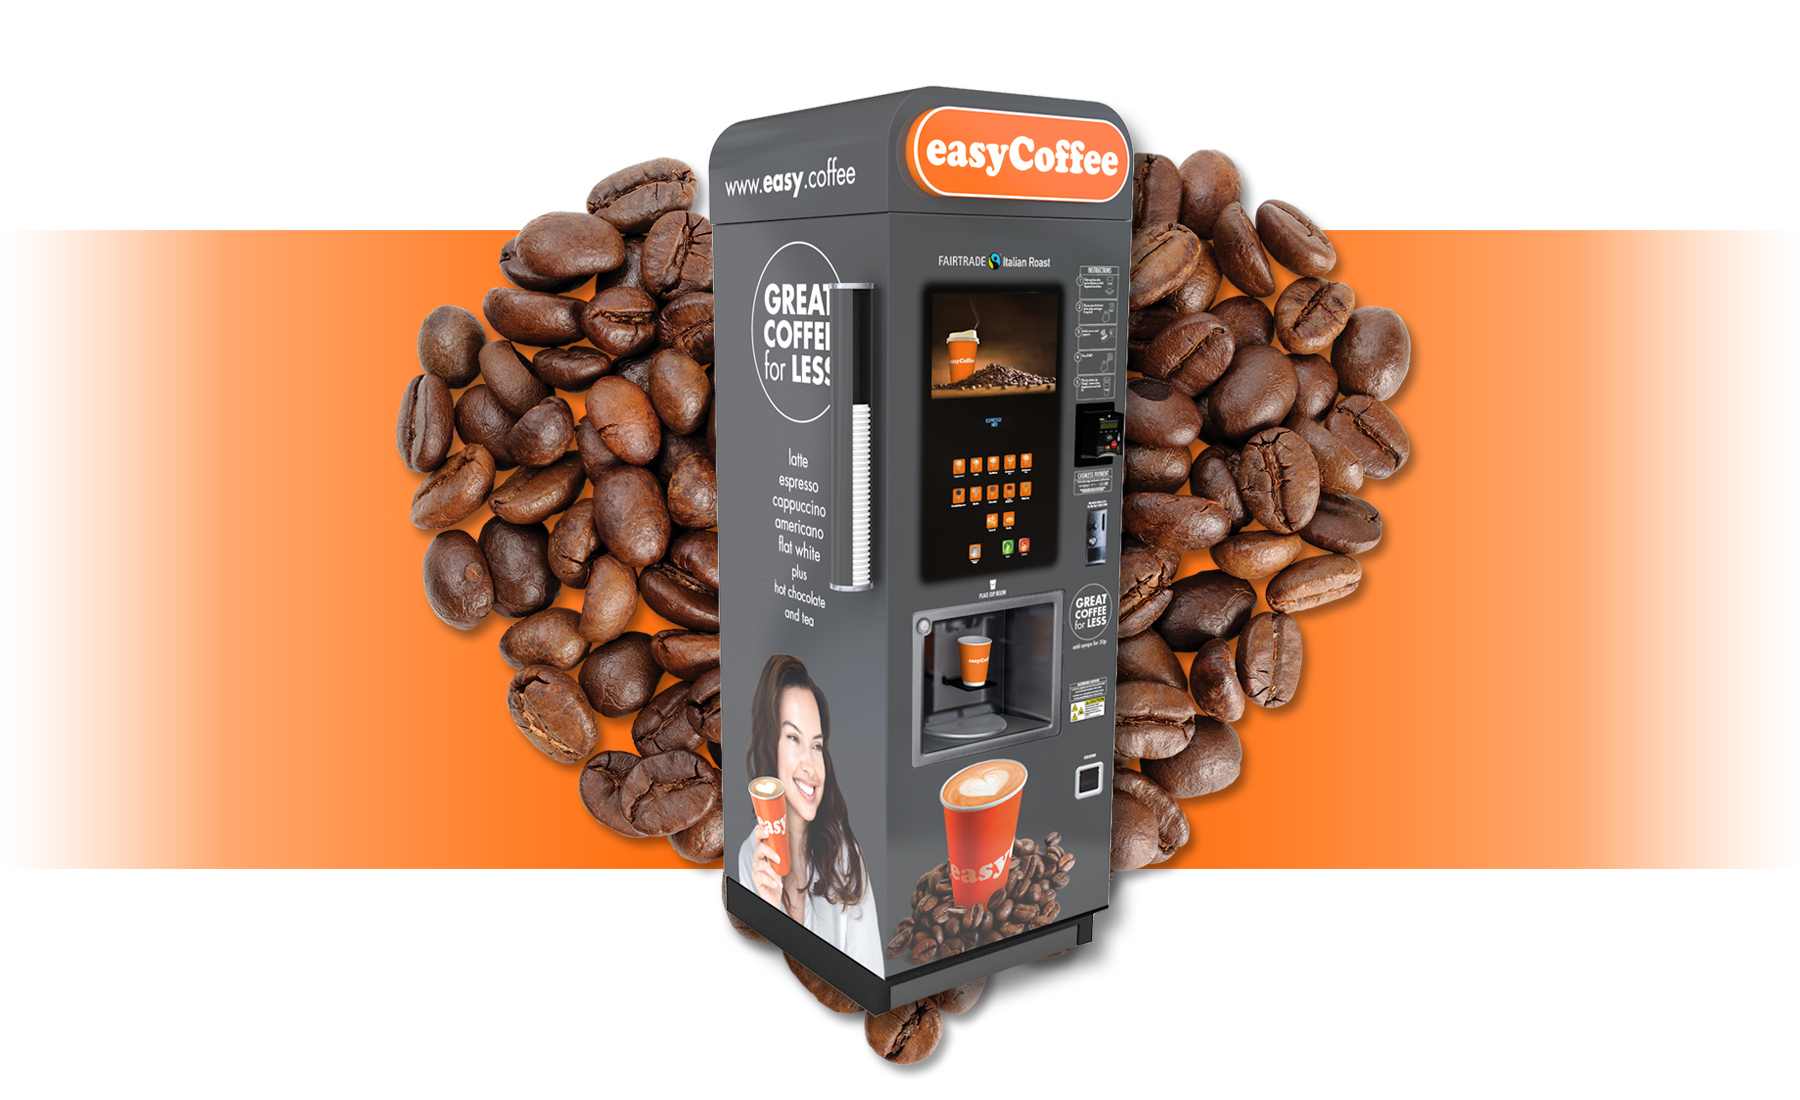 Coffee+bean+heart+machine3.jpg